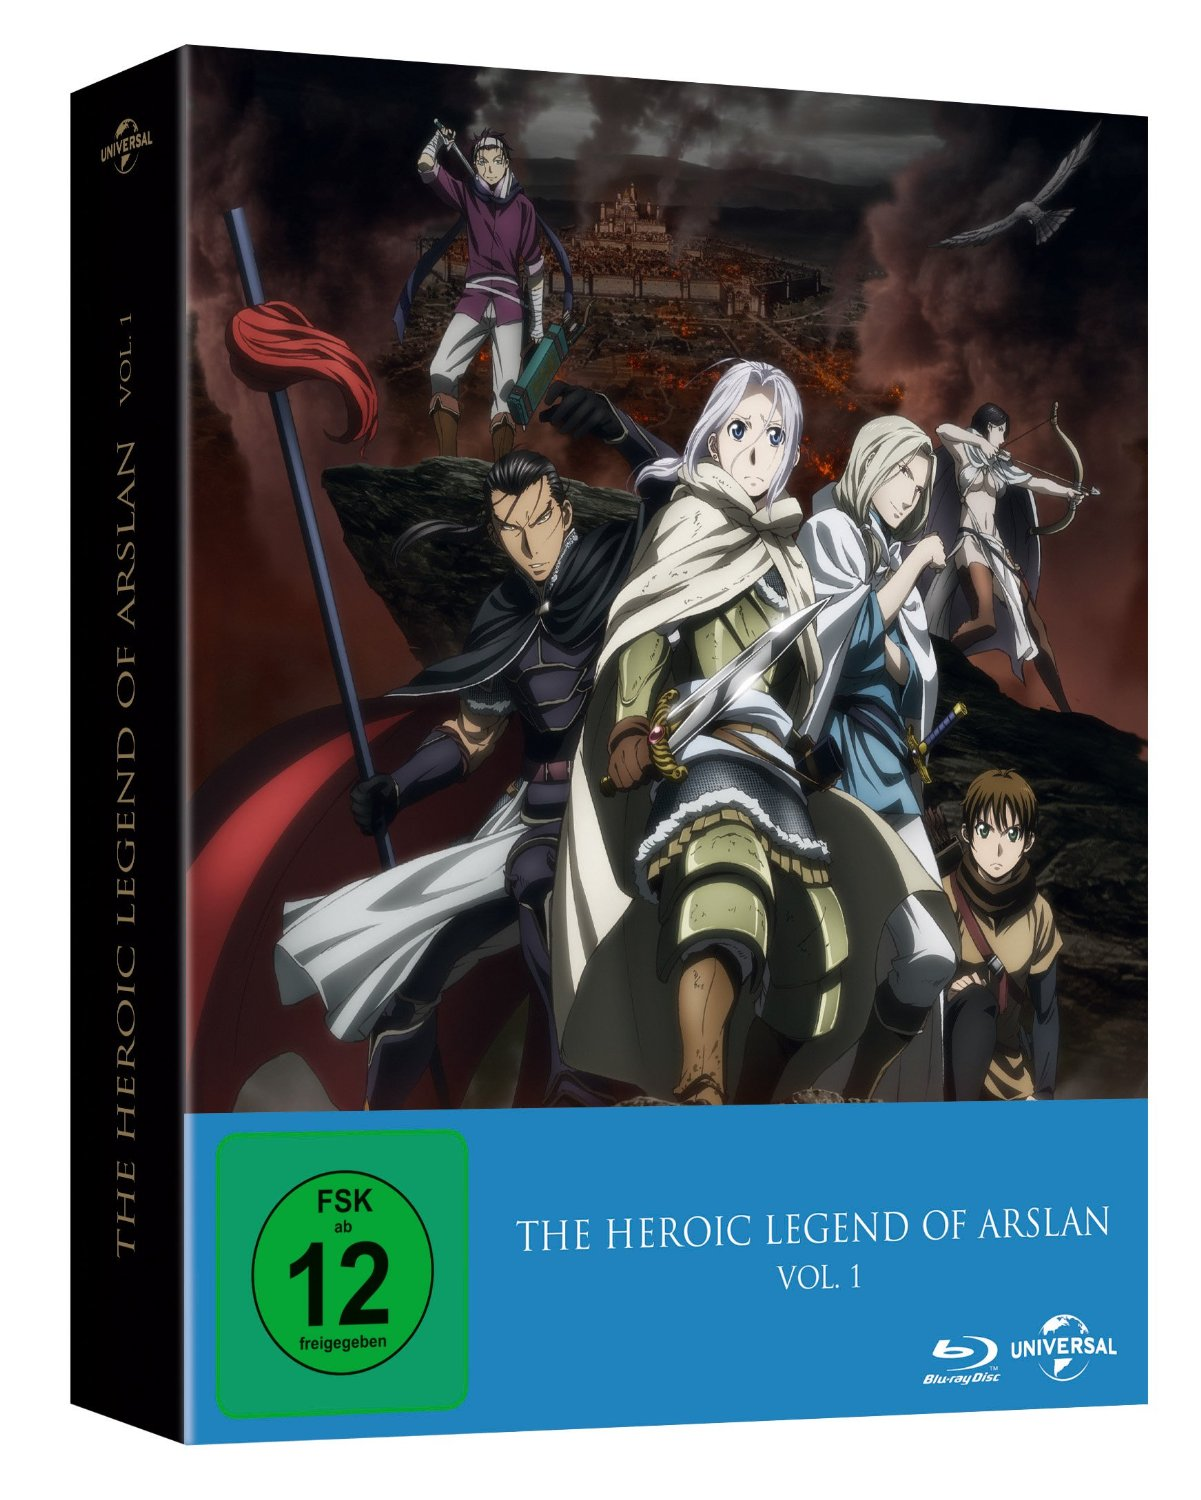 ~The Heroic Legend of Arslan – Vol. 1 (Ep. 1-13) ~ DVD Test / Review